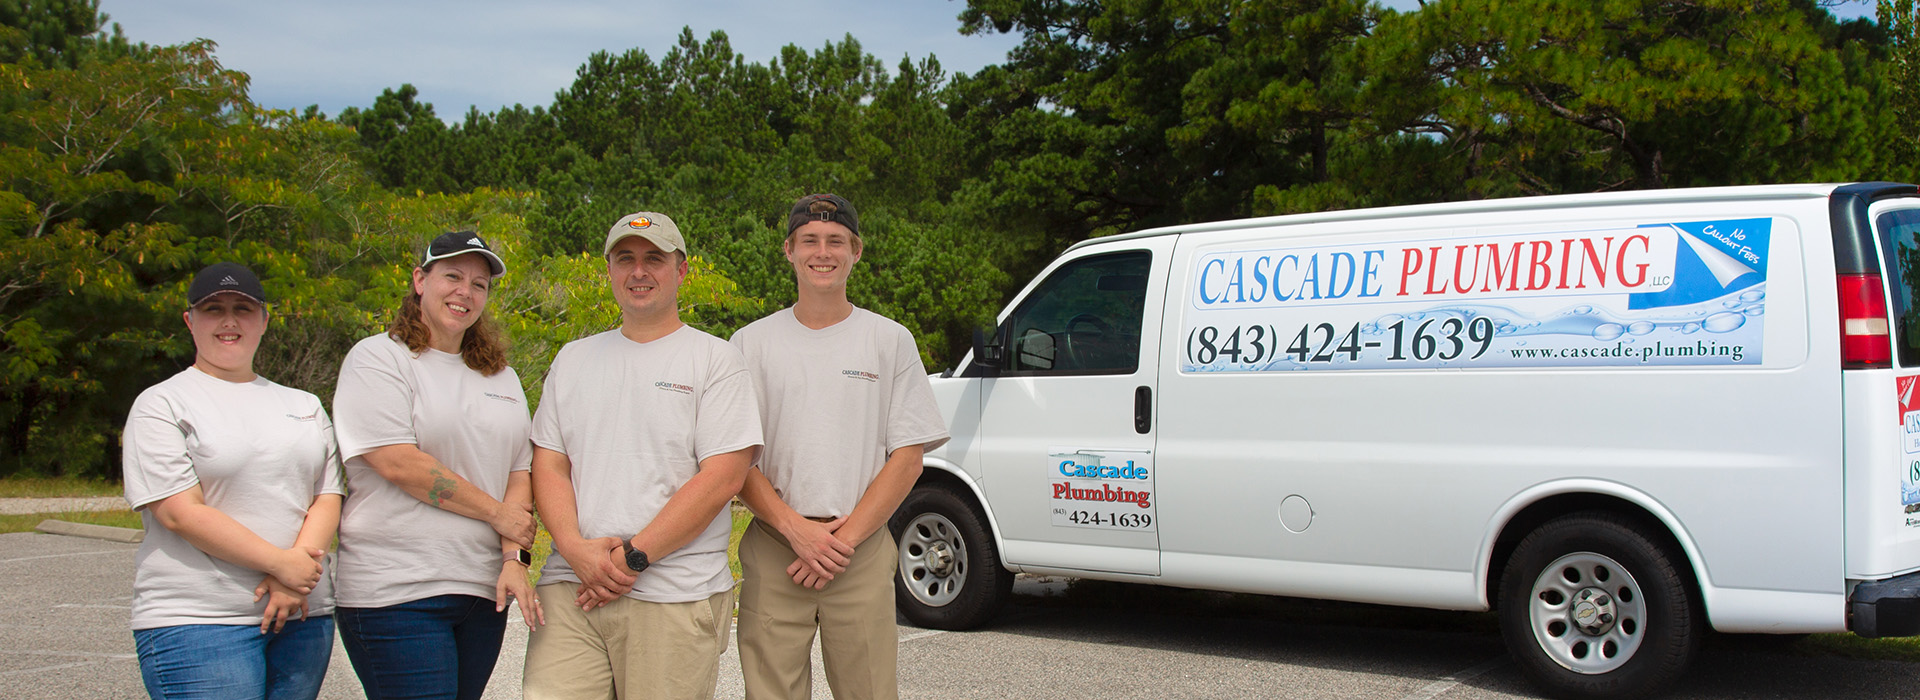 Cascade-Plumbing-Surfside-Beach